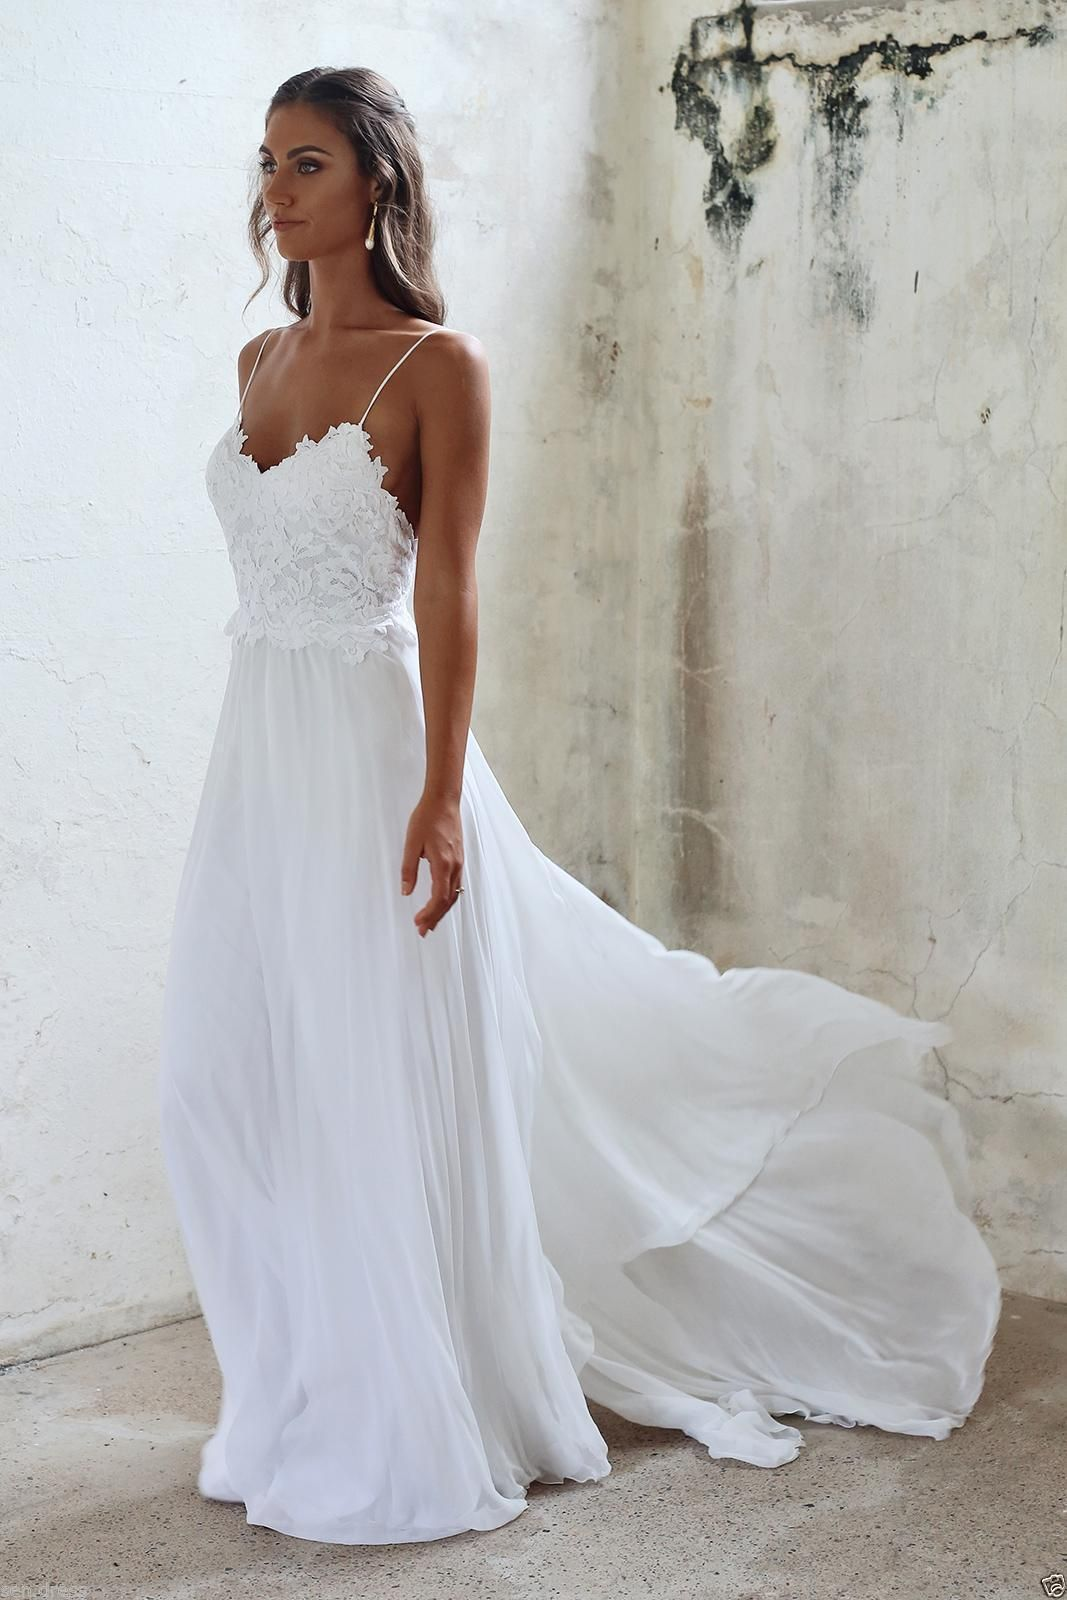 Cool White Bridal Gowns 2017 Backless Chiffon Wedding Dresses ...